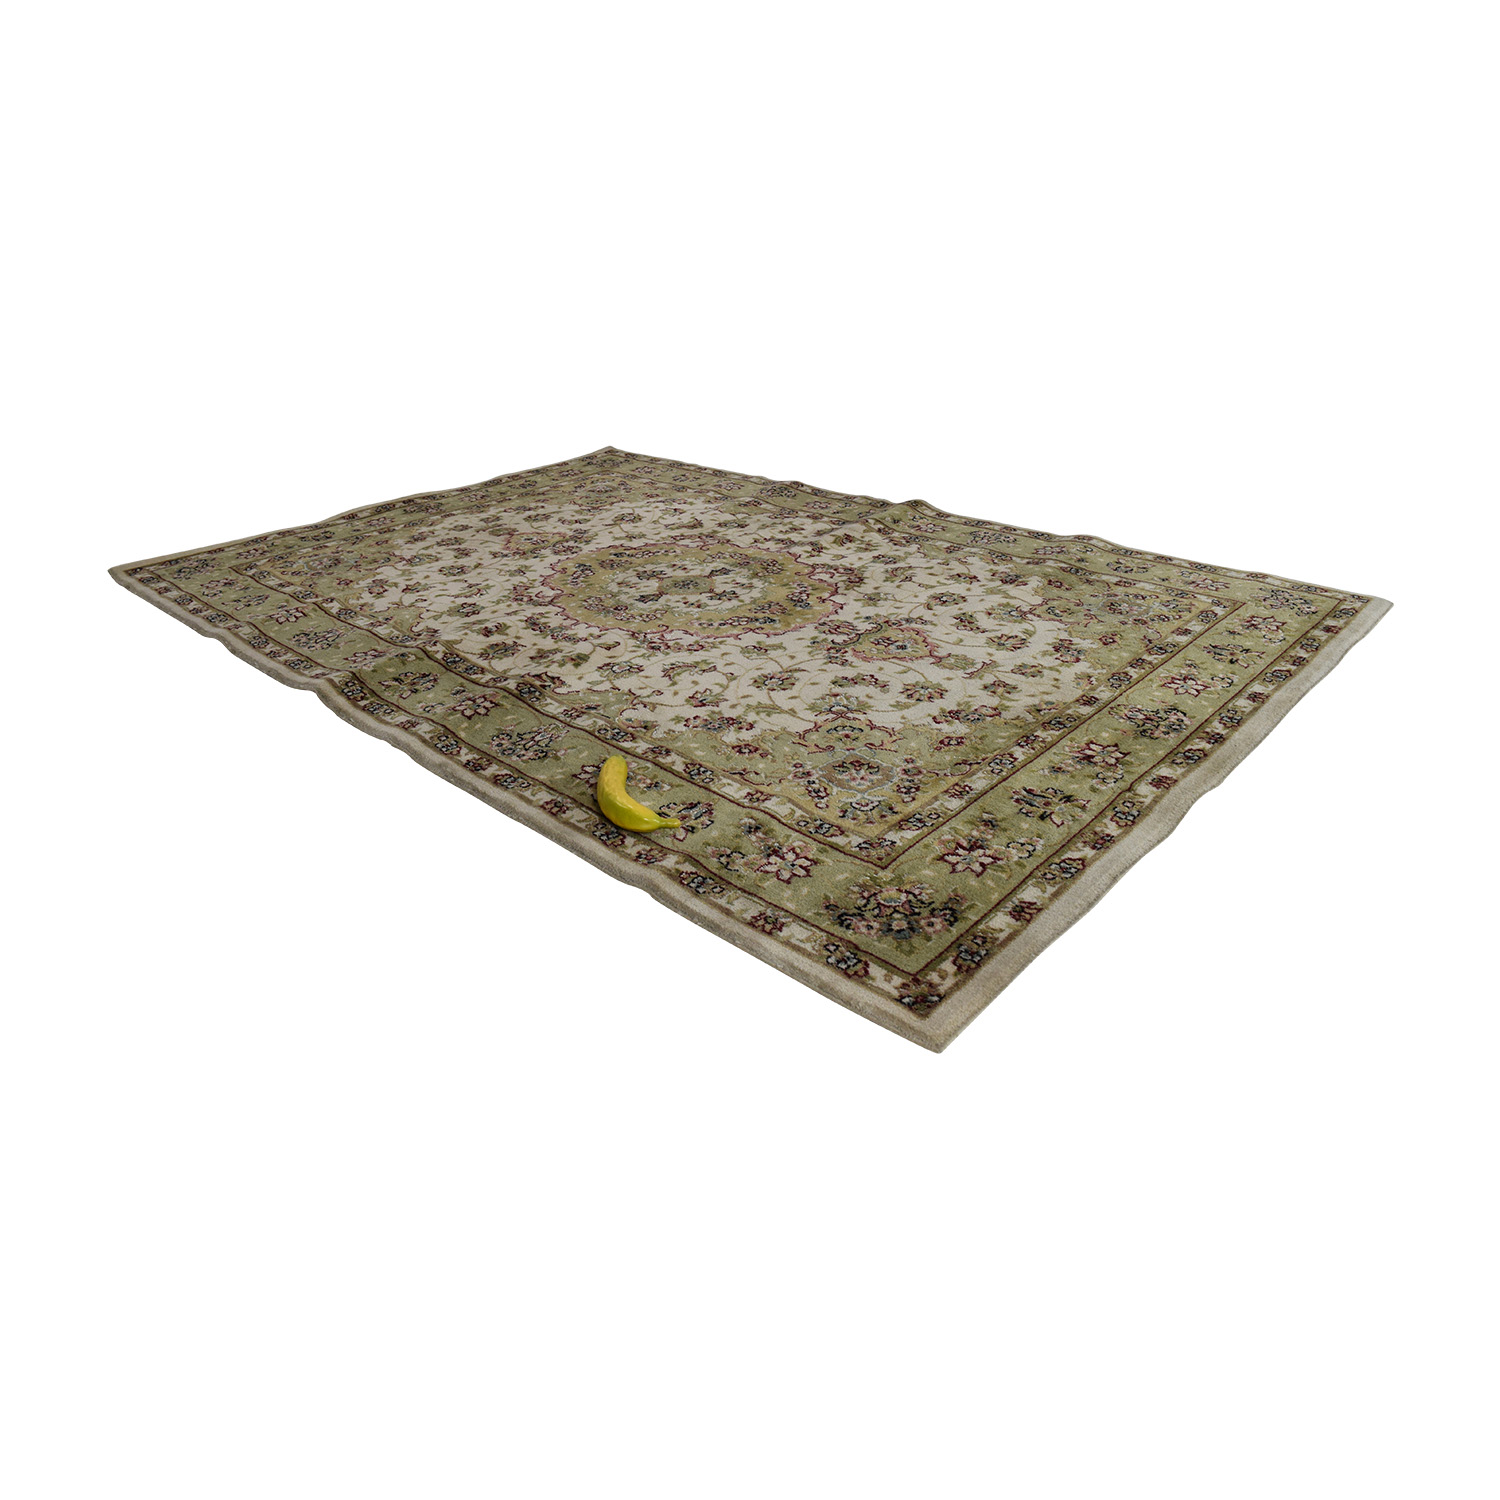 buy Unknown Brand Oversized Area Rug online